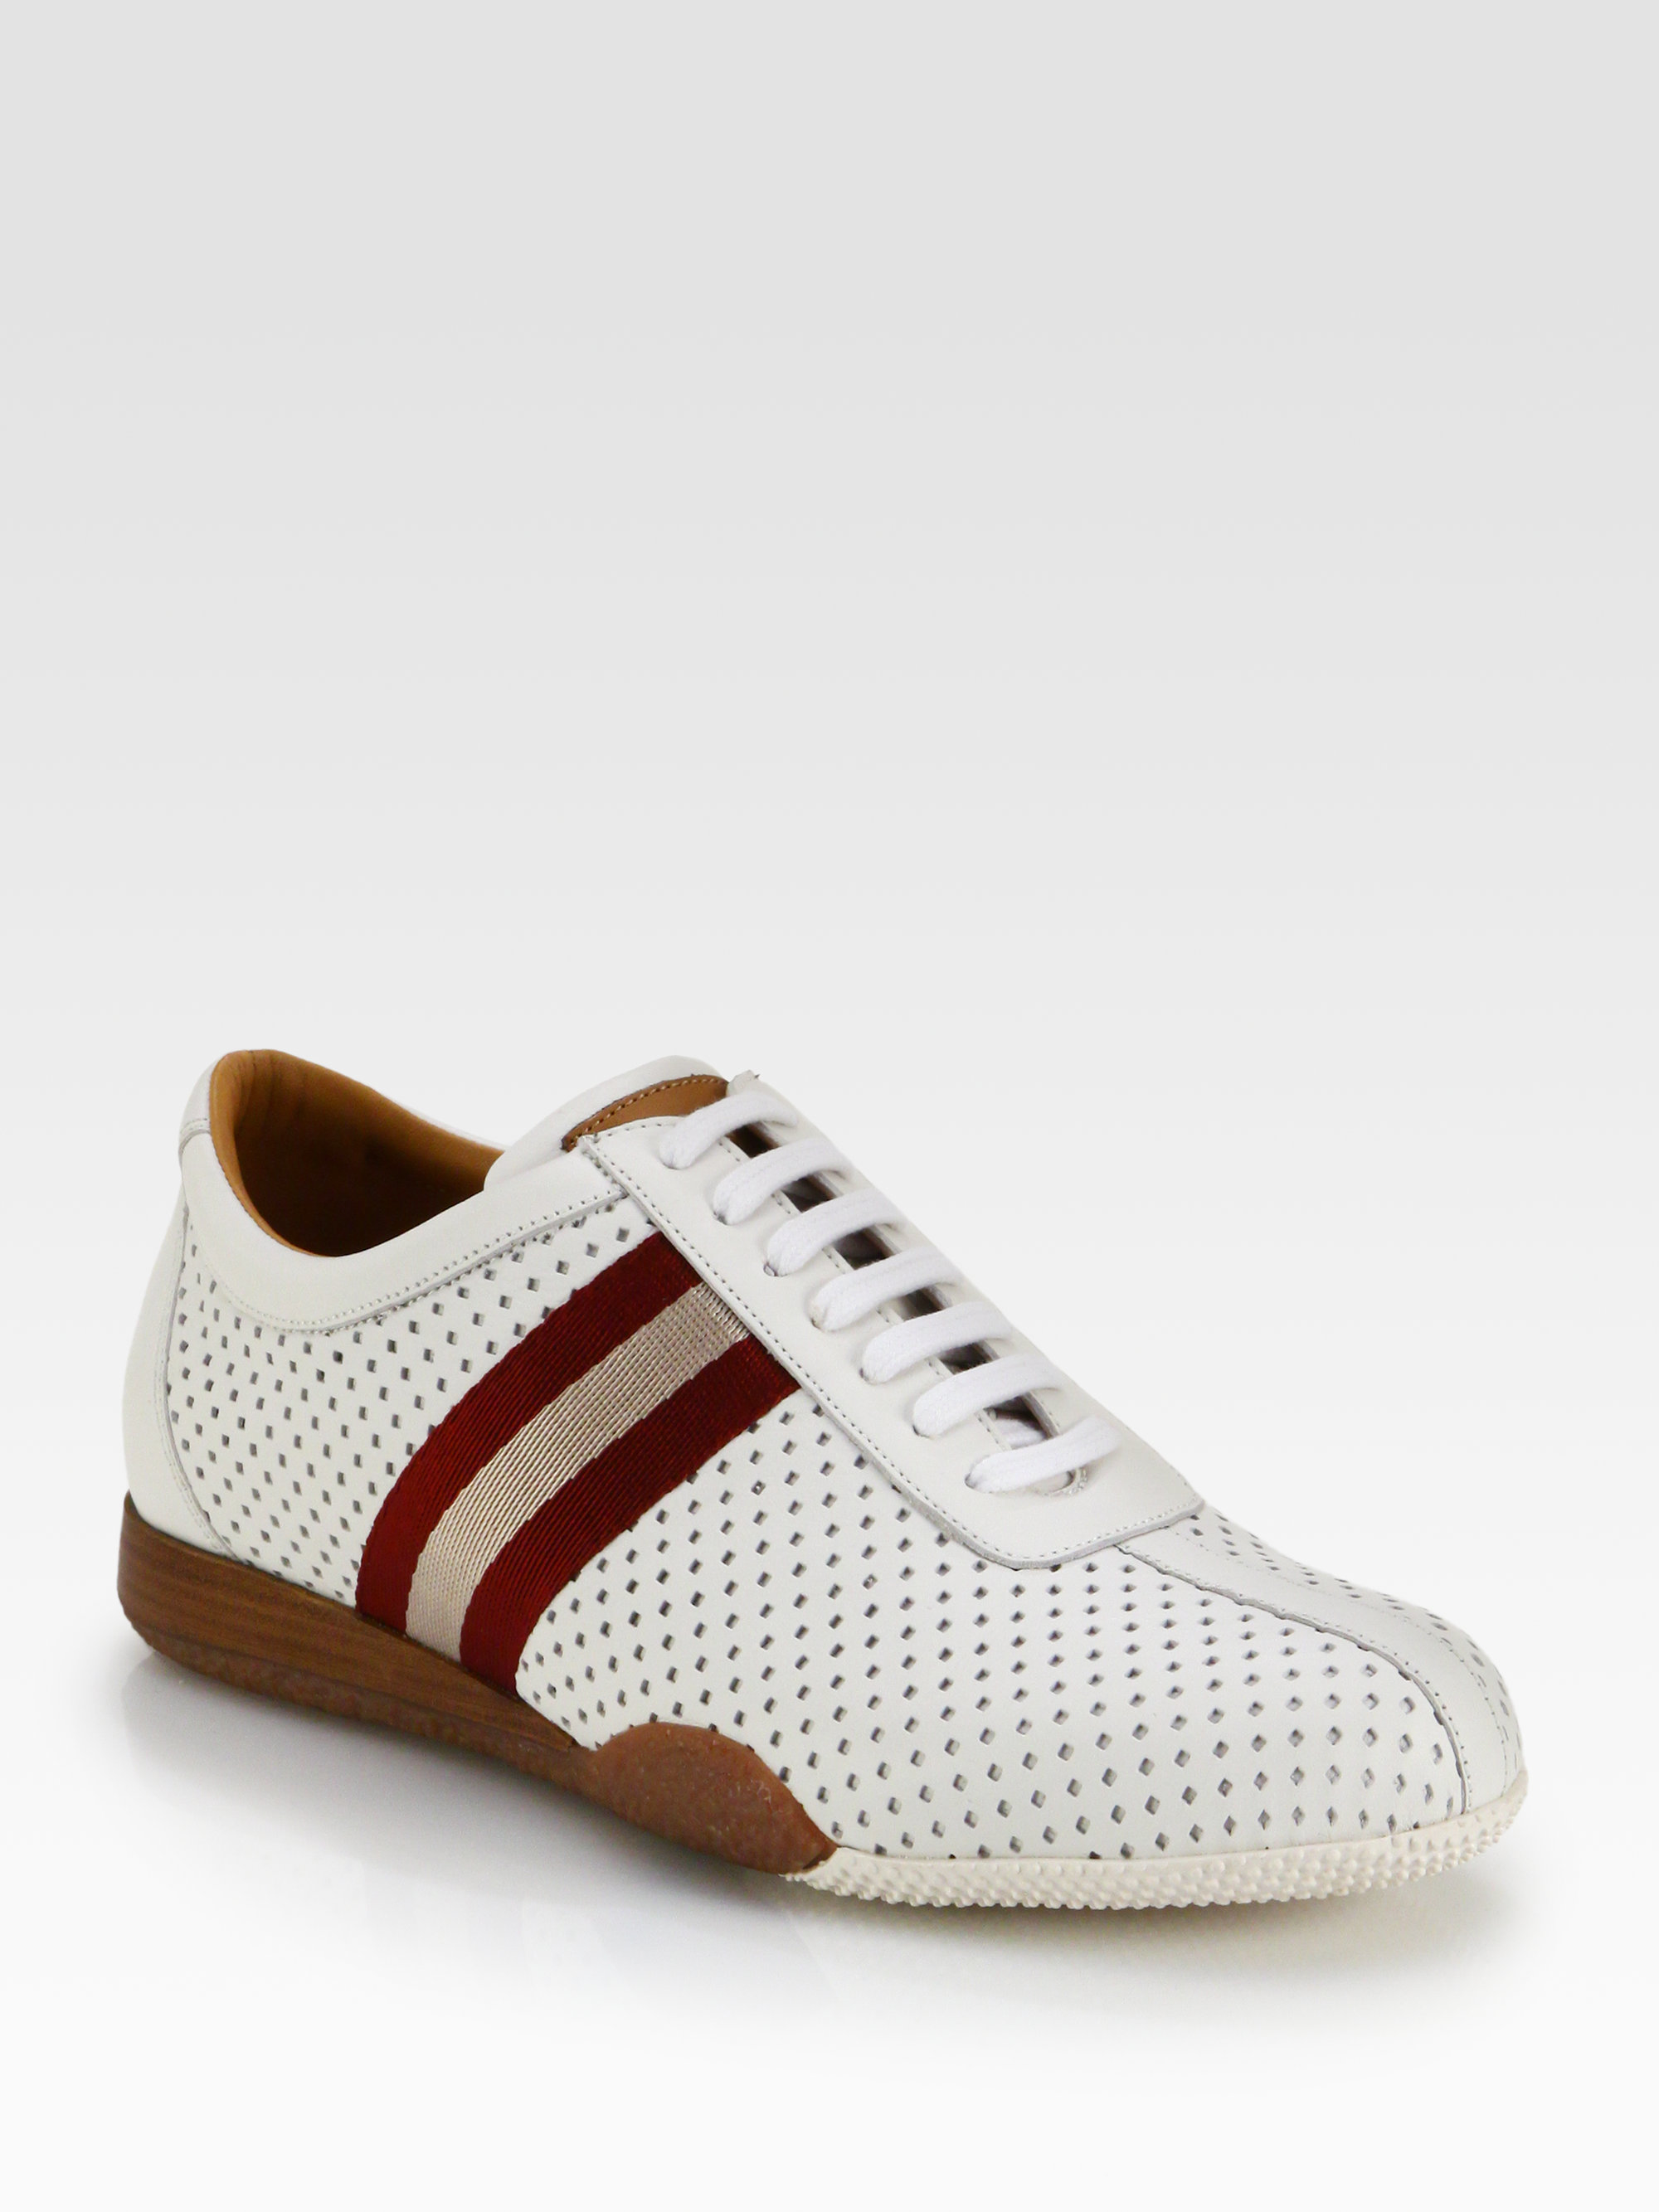 Bally Perforated Leather Sneakers in